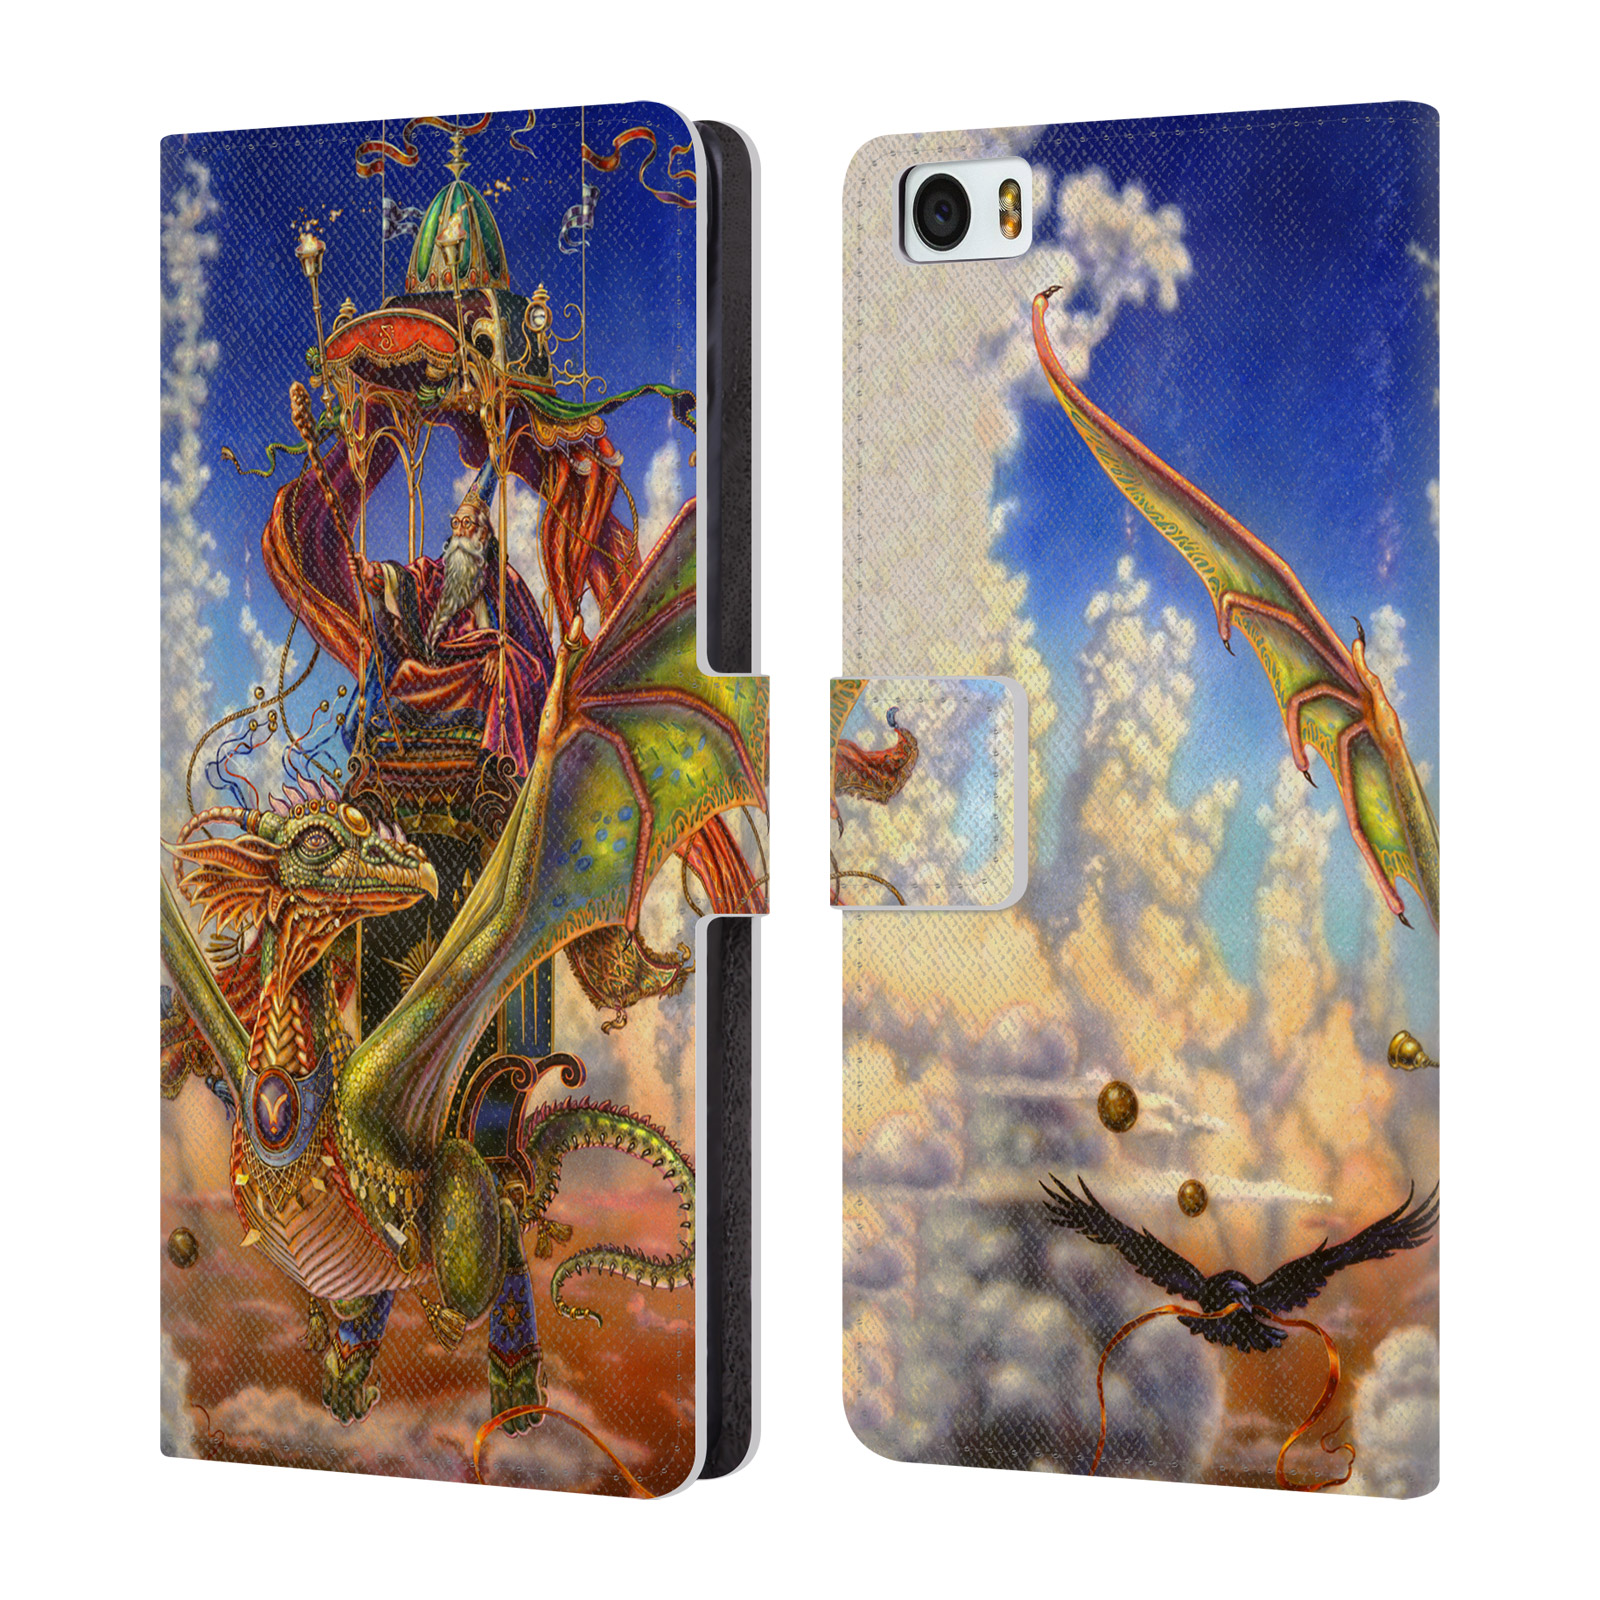 OFFICIAL-MYLES-PINKNEY-FANTASY-LEATHER-BOOK-WALLET-CASE-COVER-FOR-XIAOMI-PHONES